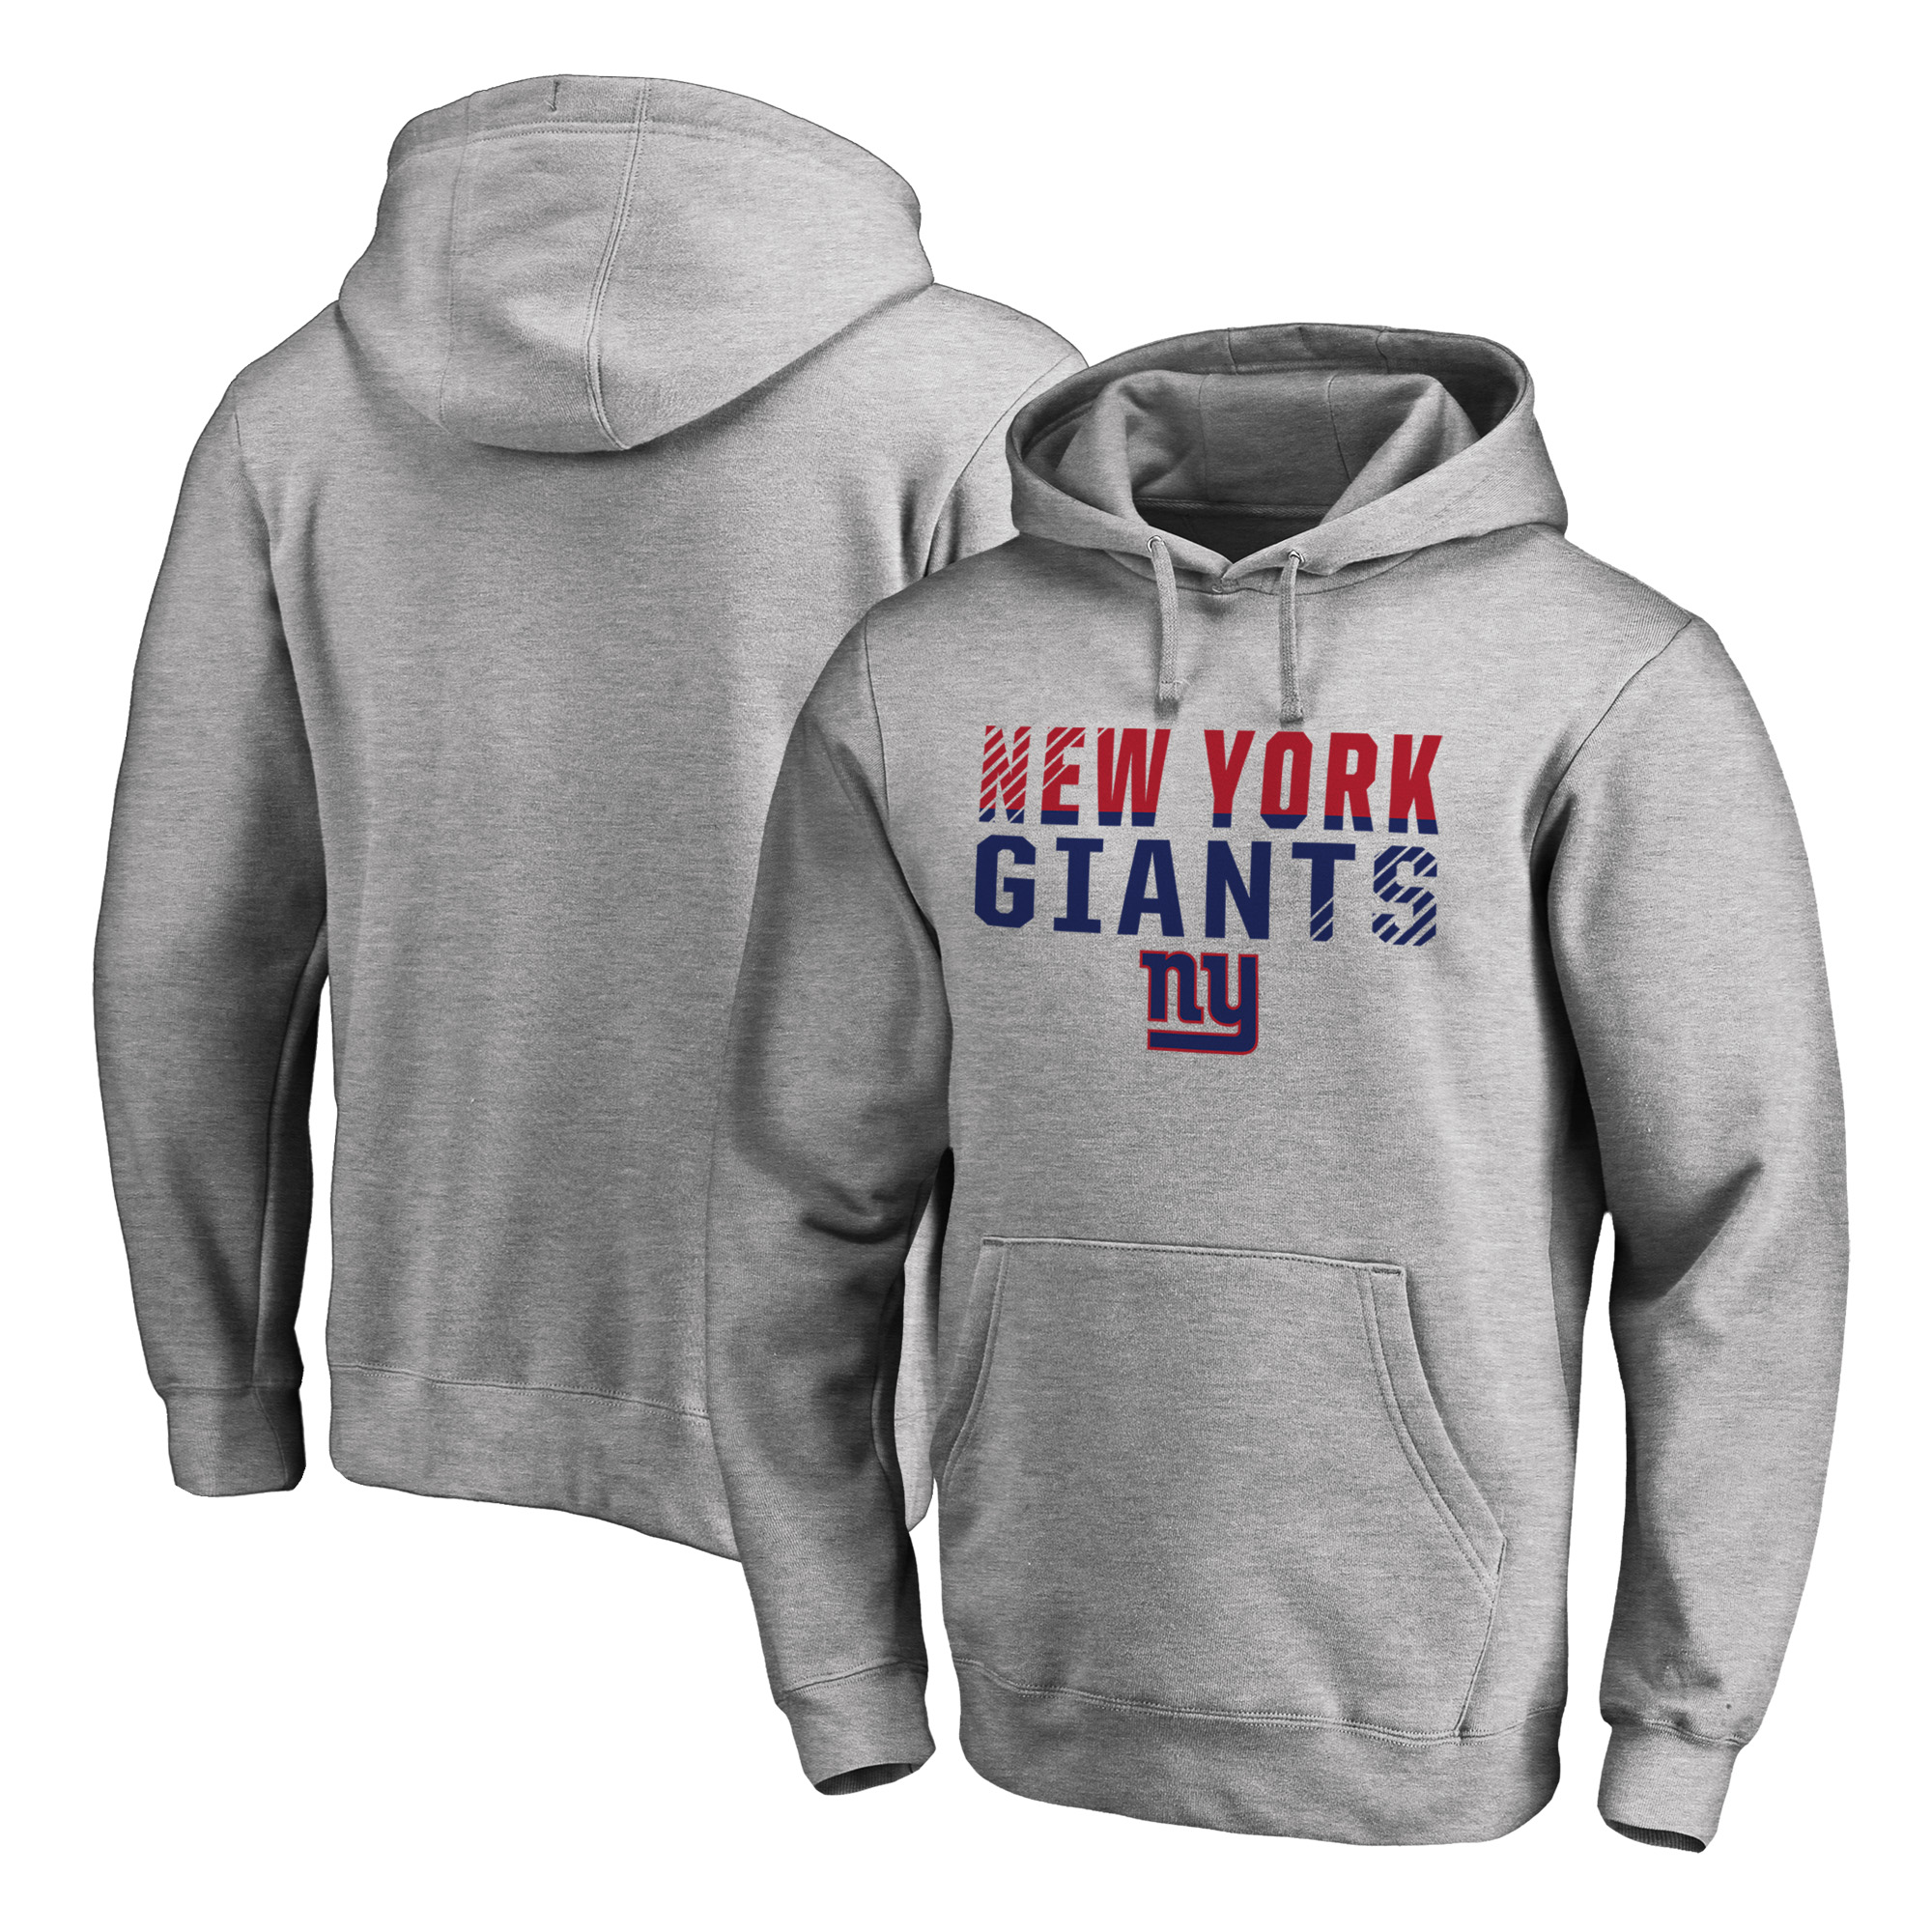 New York Giants NFL Pro Line by Fanatics Branded Iconic Collection Fade Out Pullover Hoodie - Ash